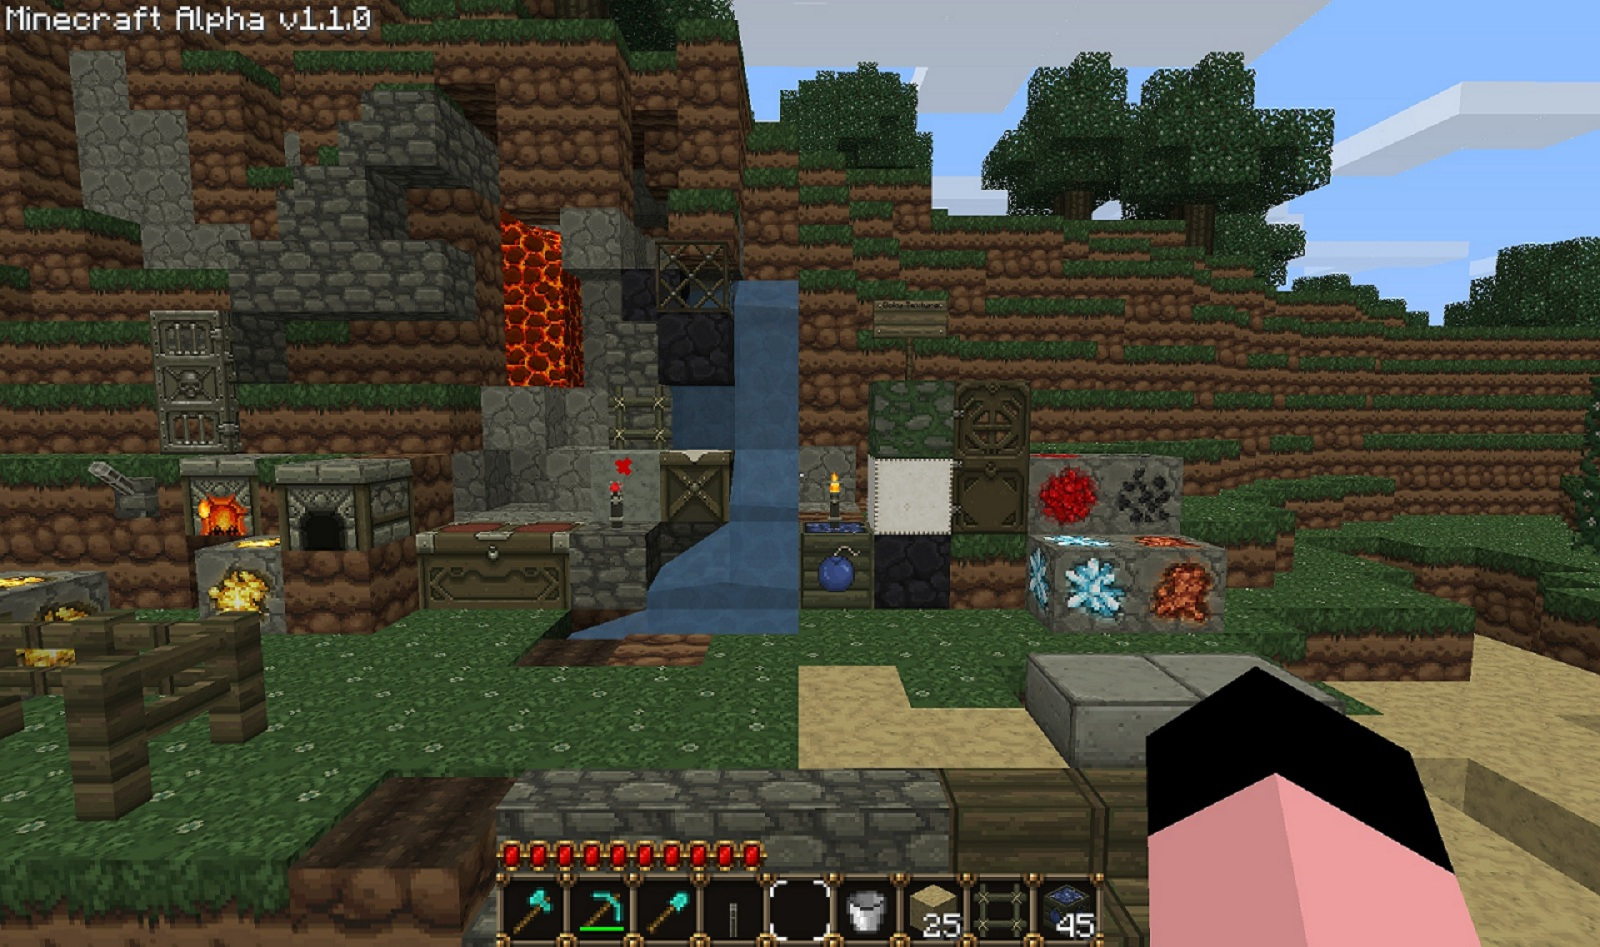 How to install a Minecraft texture pack | PC Gamer - photo#4